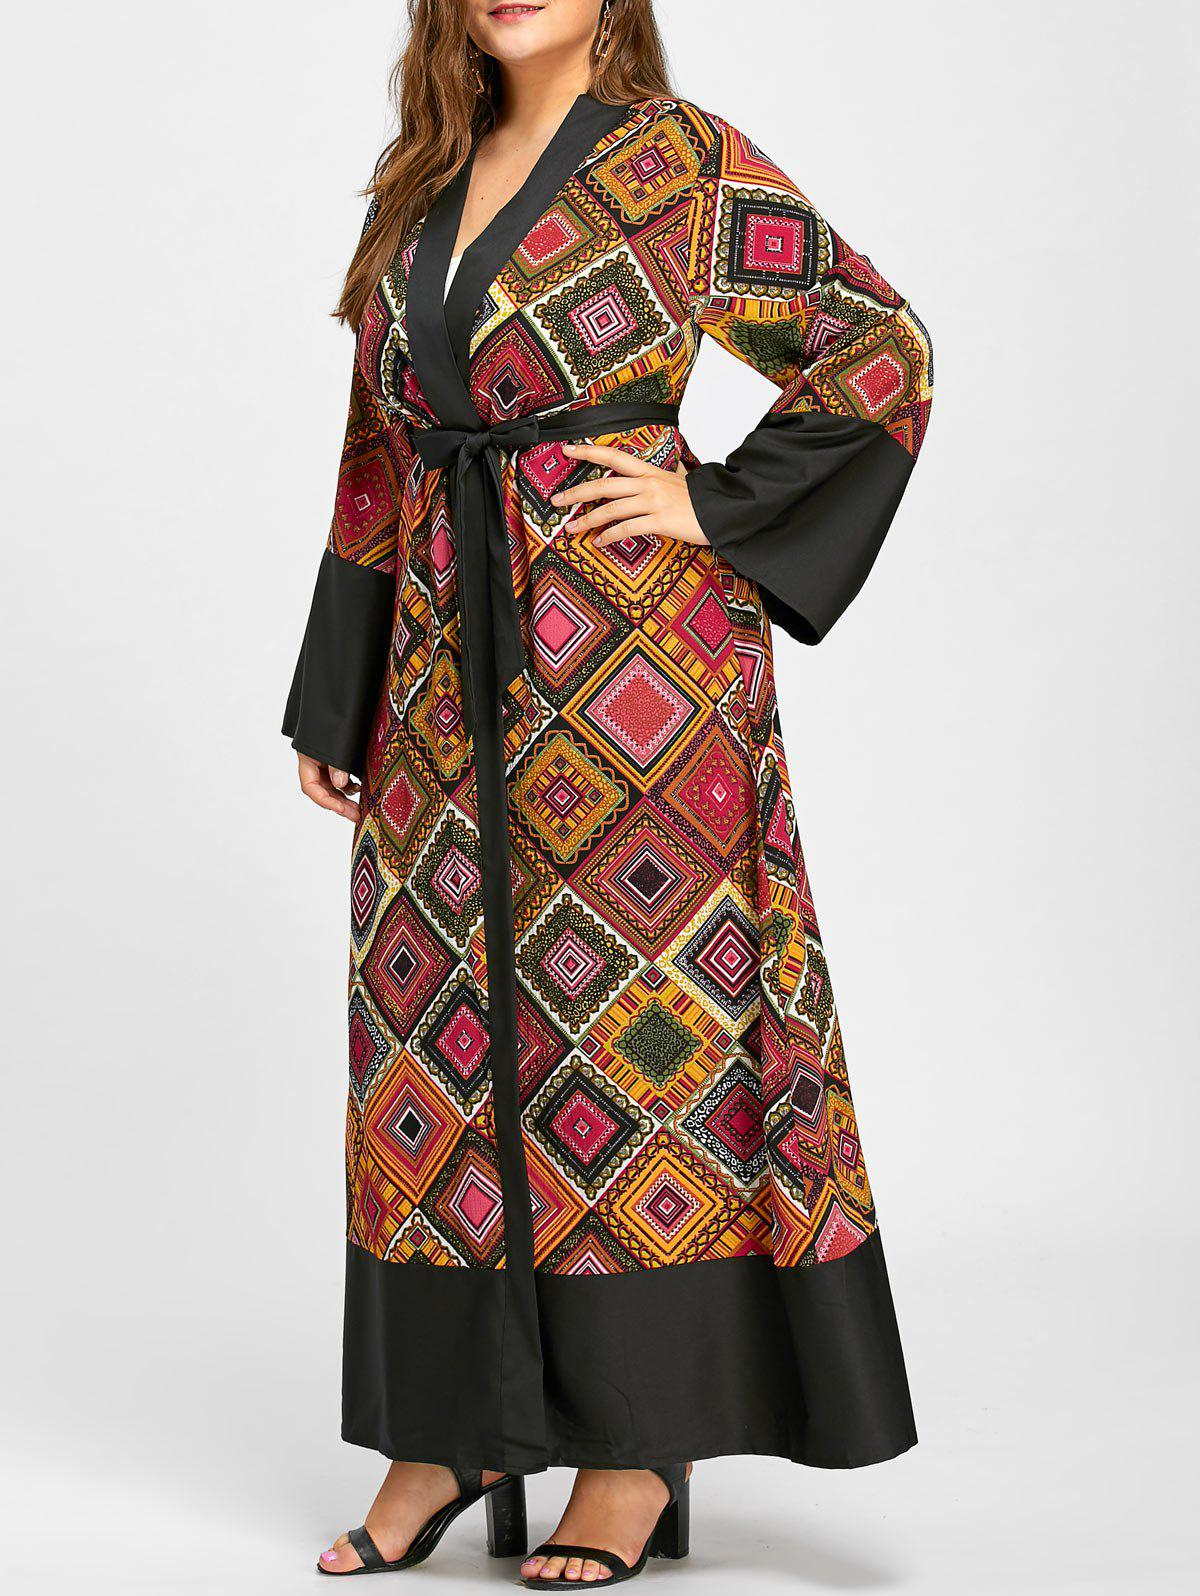 Sale Tribal Argyle Printed Plus Size Maxi Robe Coat